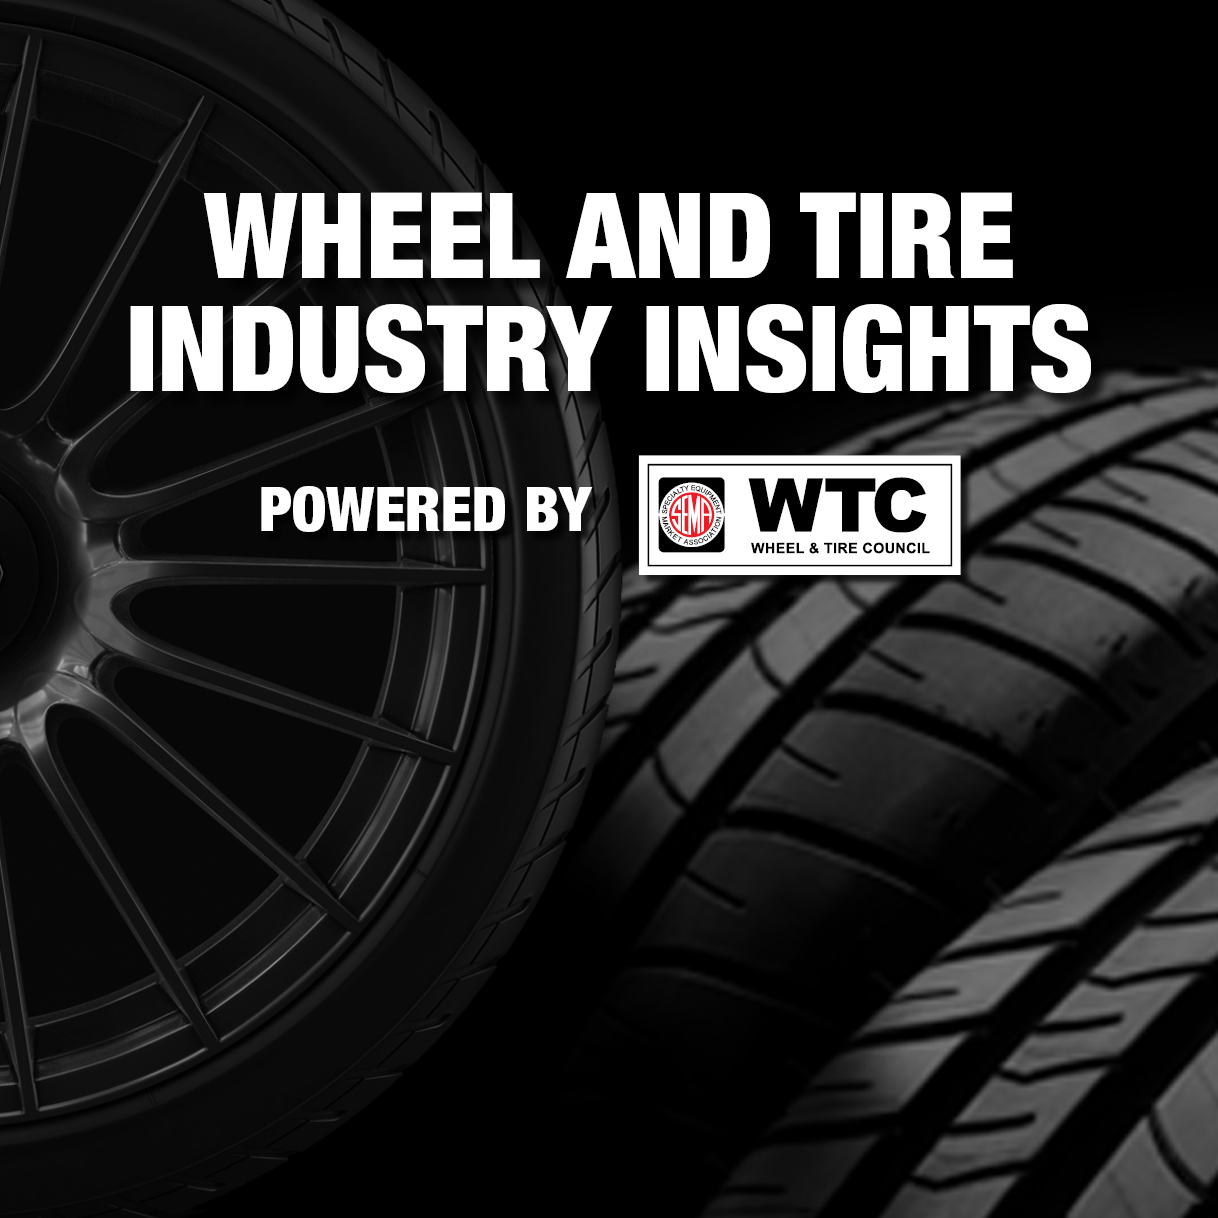 Wheel and Tire Industry Insights, powered by WTC